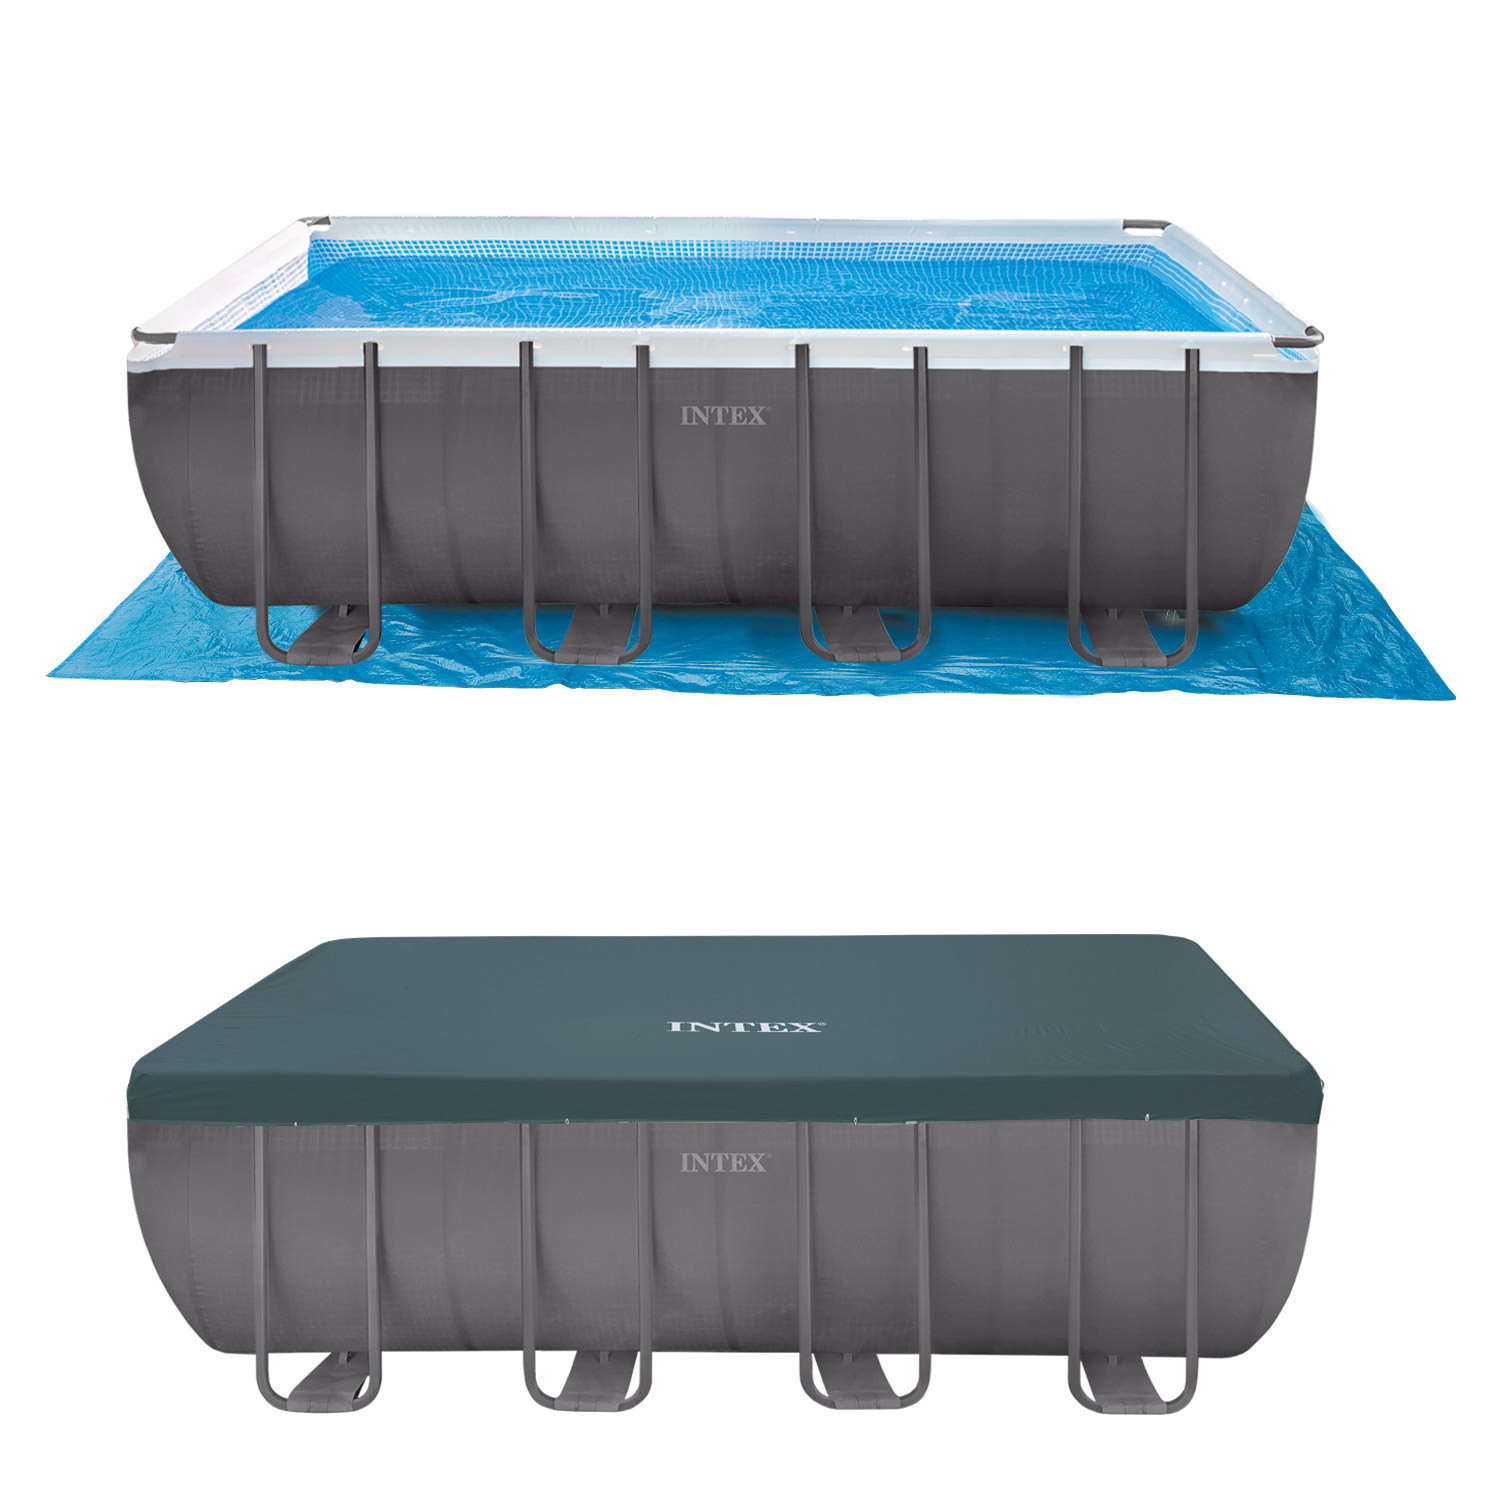 Sandfilteranlage Pool 25000 Liter Intex 549x274x132 Swimming Pool Set Rechteck Stahlwand